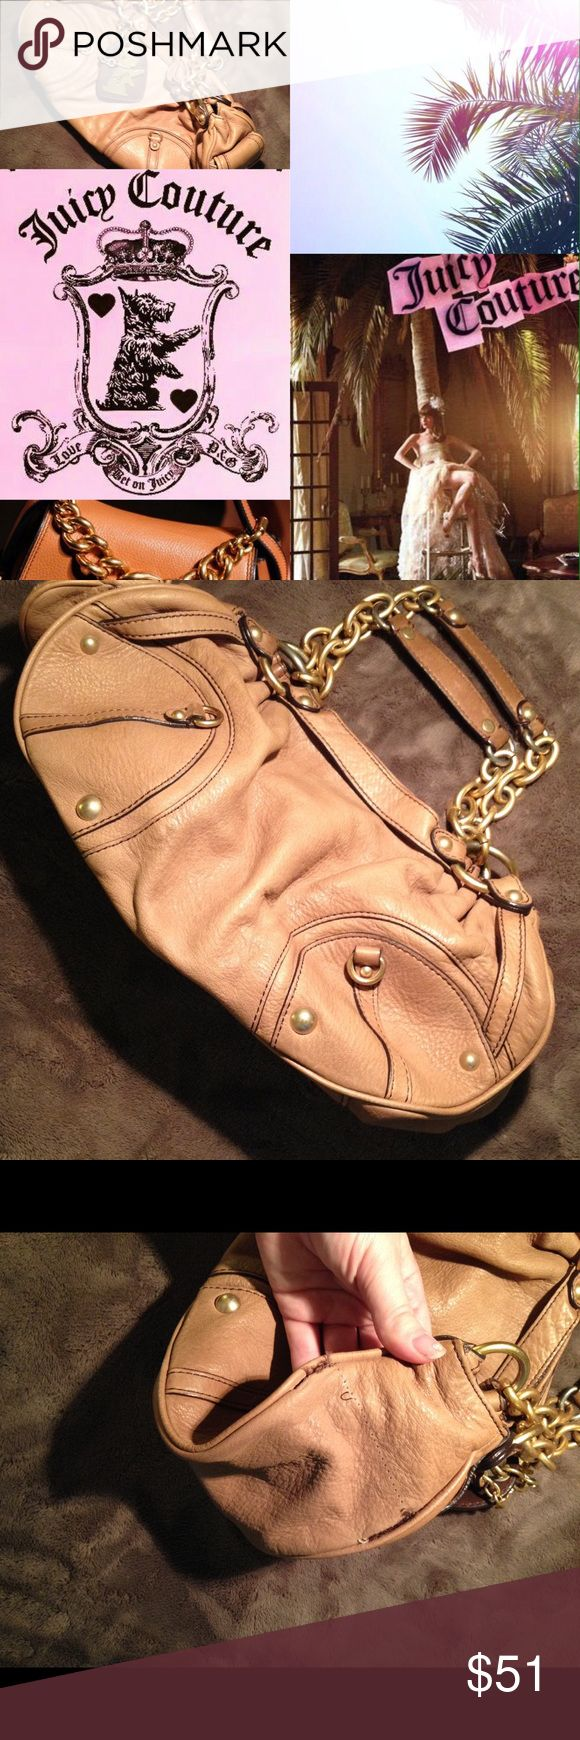 Get the Look 🌴 Juicy Couture leather satchel This is an authentic Juicy Couture leather bag. The straps have gold chains and studs. I no longer have the dust bag. On the inside there is a rip in the lining. On one side of the big, a pocket had been partially ripped off and damaged in an incident. I seam ripped the remains of the pocket off and diy-ed it into a separate coin purse. Other than that, the bag is in good condition. No stains or noticeable marks. Juicy Couture Bags Shoulder Bags